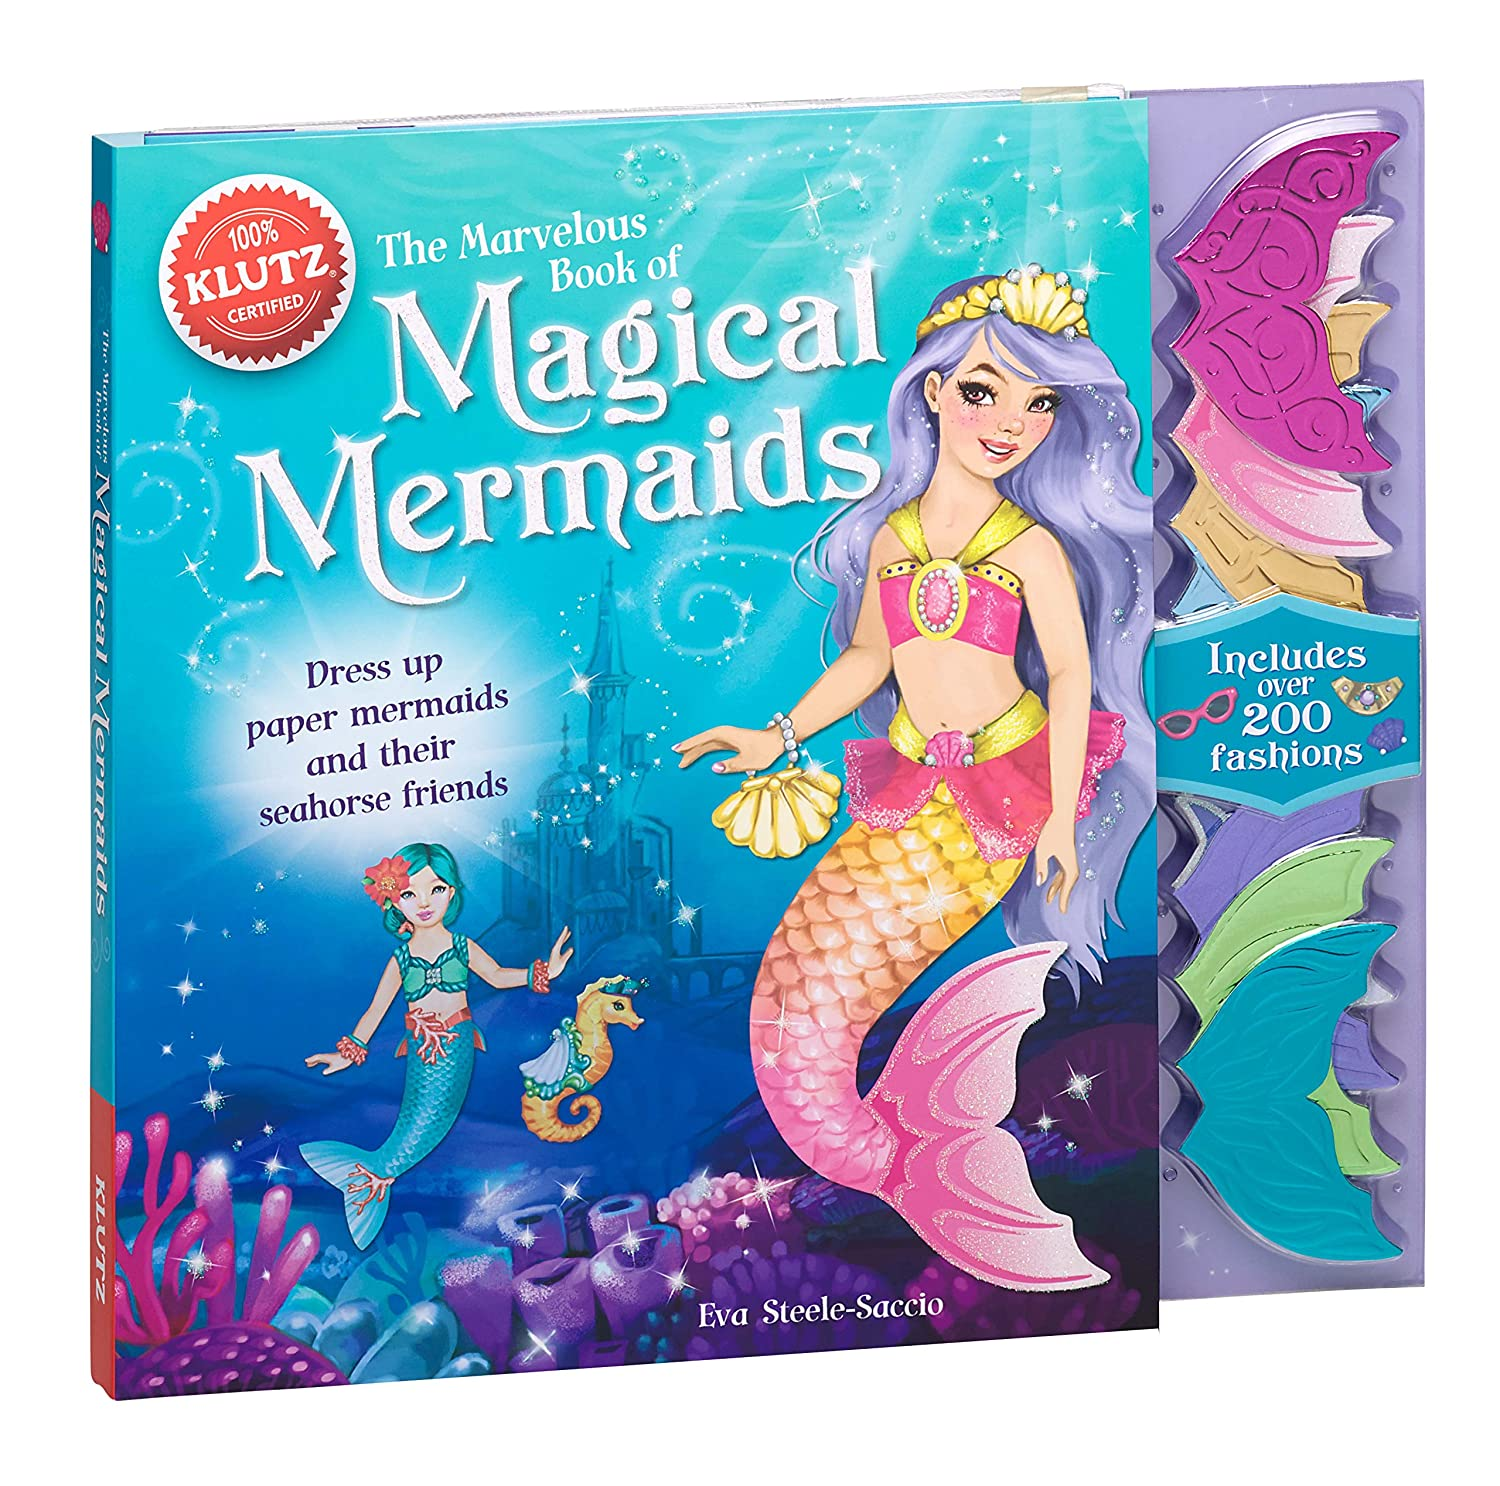 7-9 years; 9 Klutz The Marvelous Book of Magical Mermaids Klutz Press K569214 Games /& Activities C L Non-fiction; Non-character; General Activity Book; 5 7 Non Tie-in CHILD: Leisure CHILD: Non-Fiction 7+ Children/'s General Interest /& Leisur